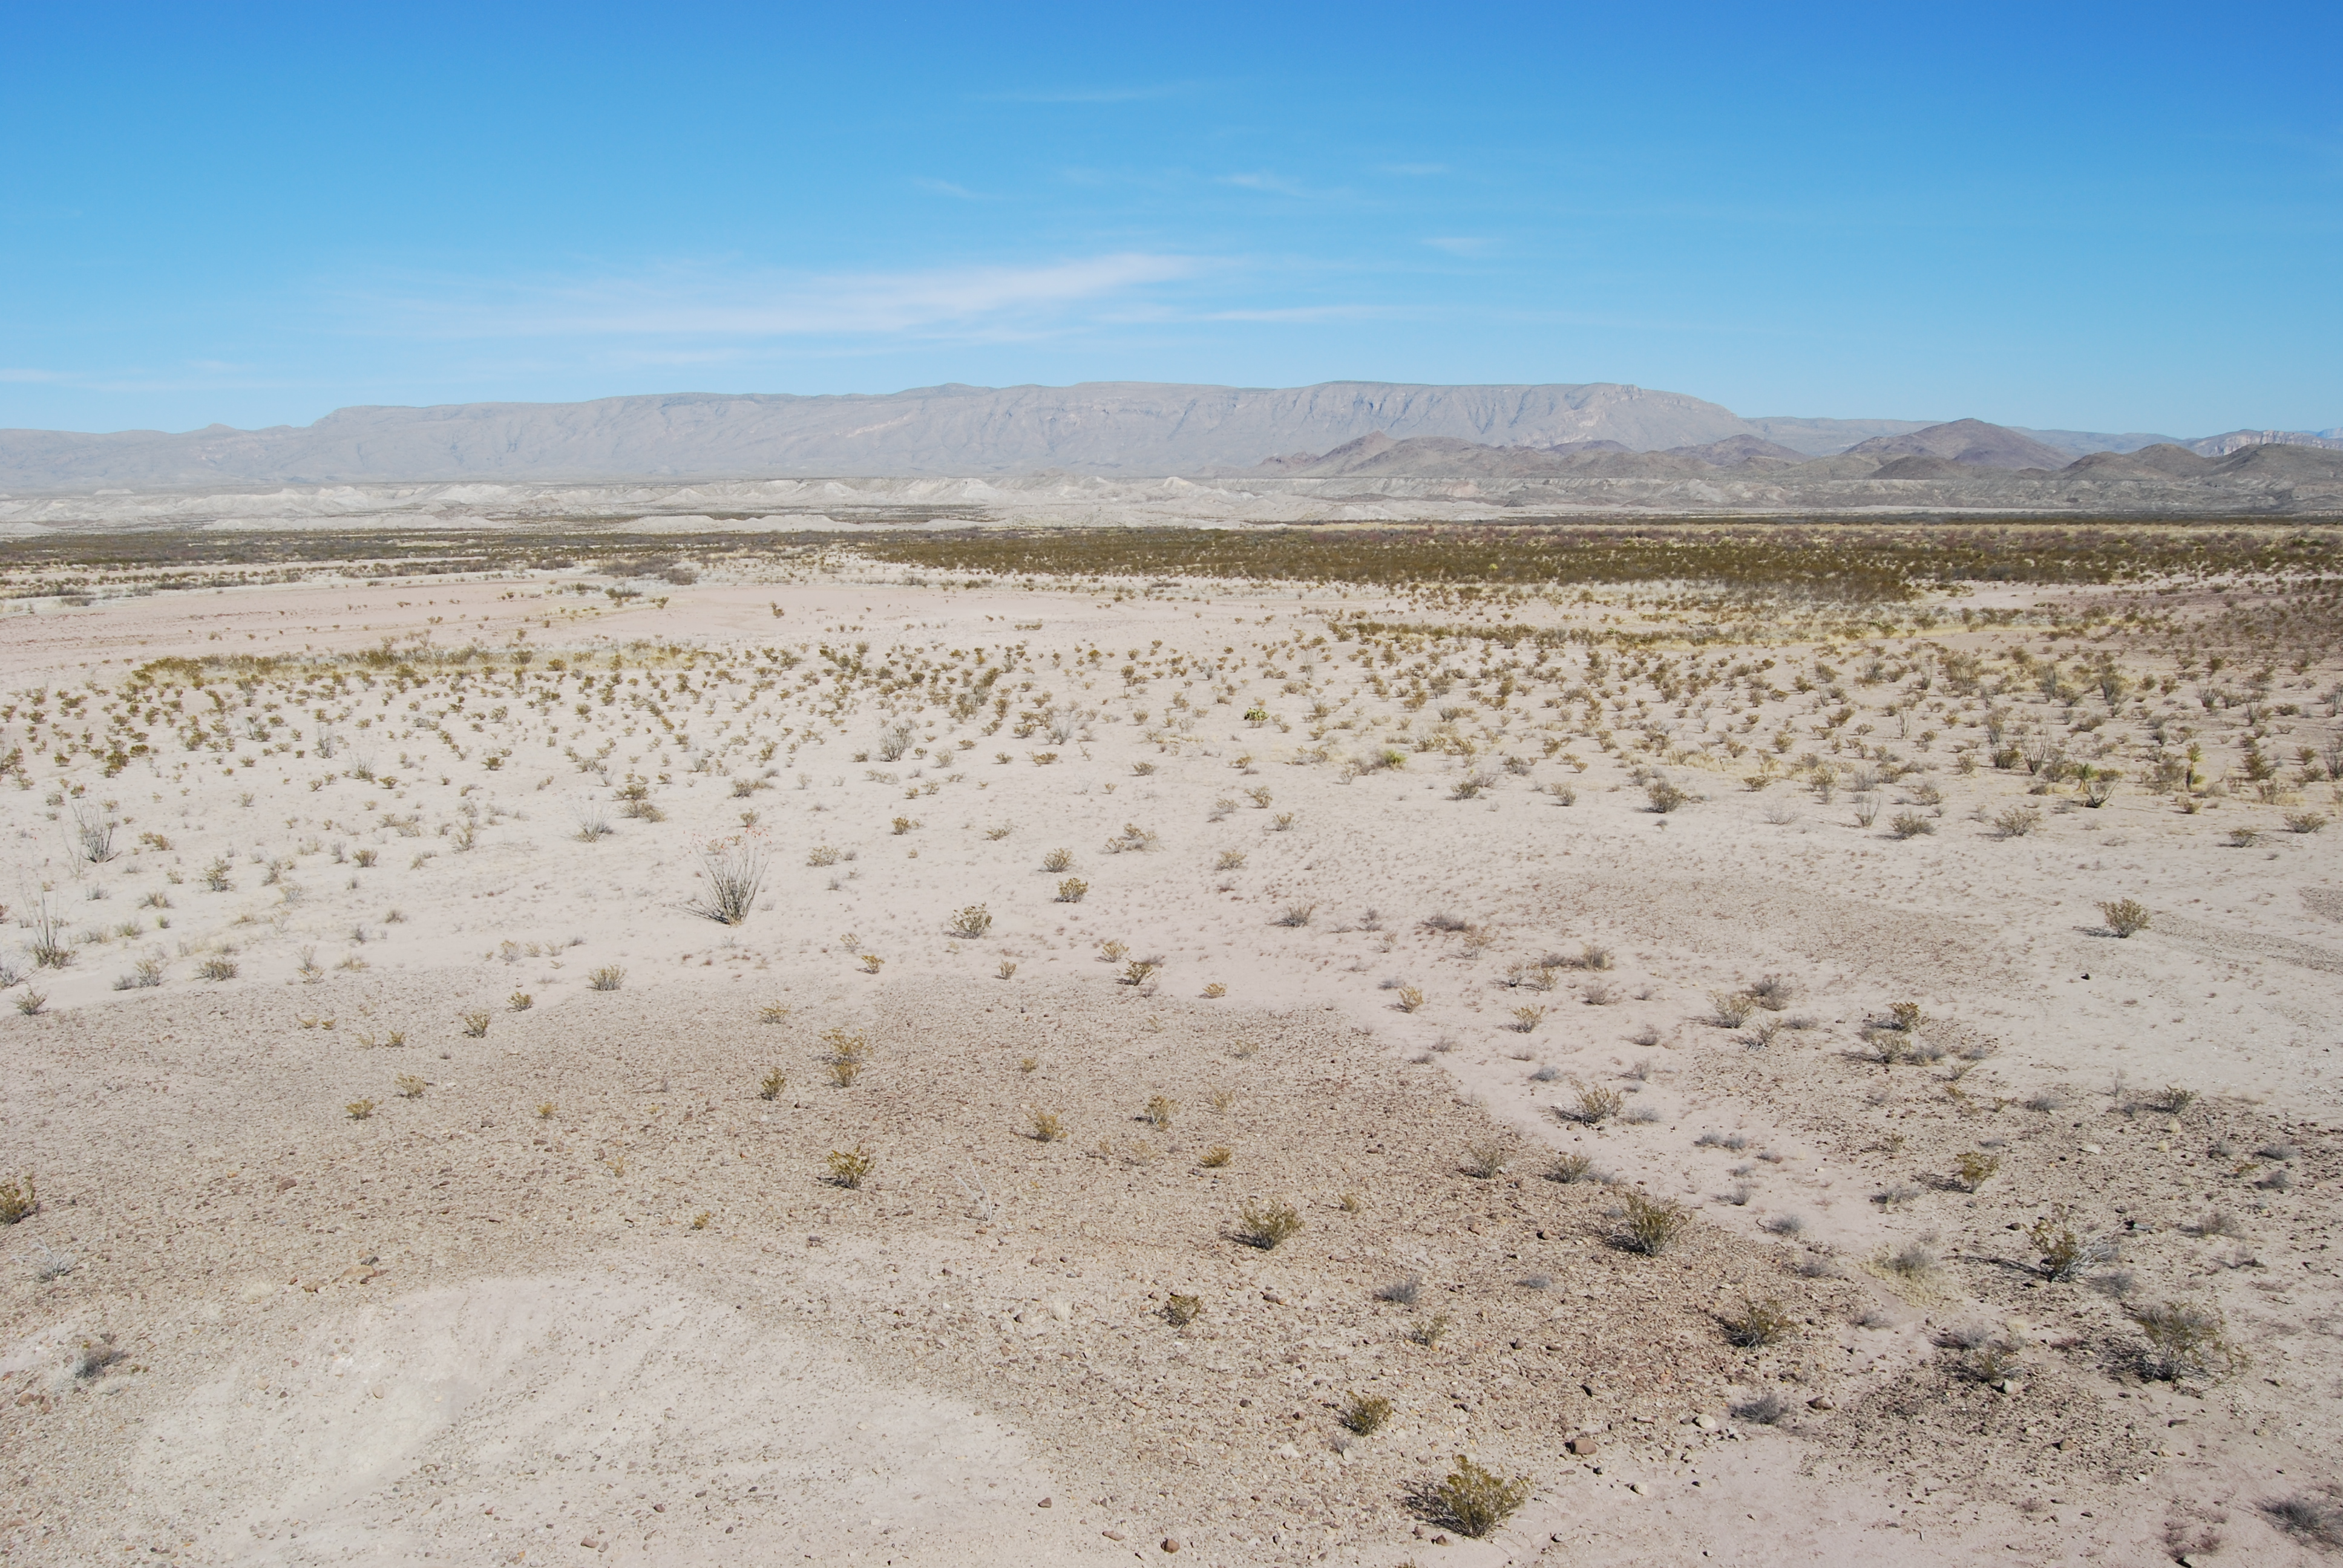 Much like Big Bend National Park, we are in a desert wasteland of Aggie sports nothing with the promise of a football oasis on the other side of the ridge.